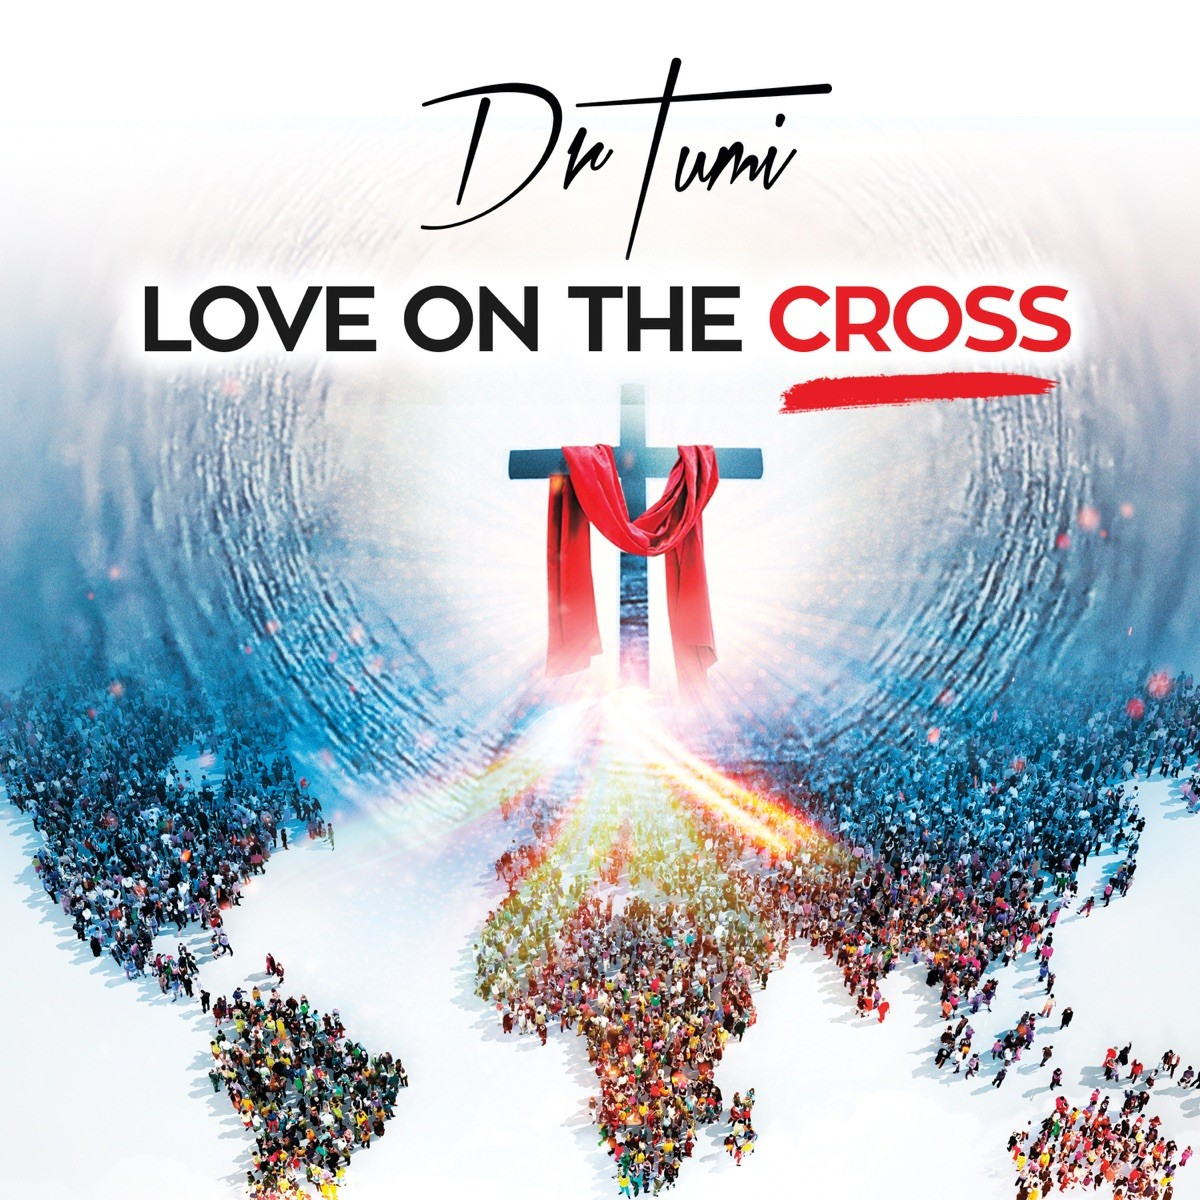 DR. Tumi - Love on the Cross CD - 060250814485